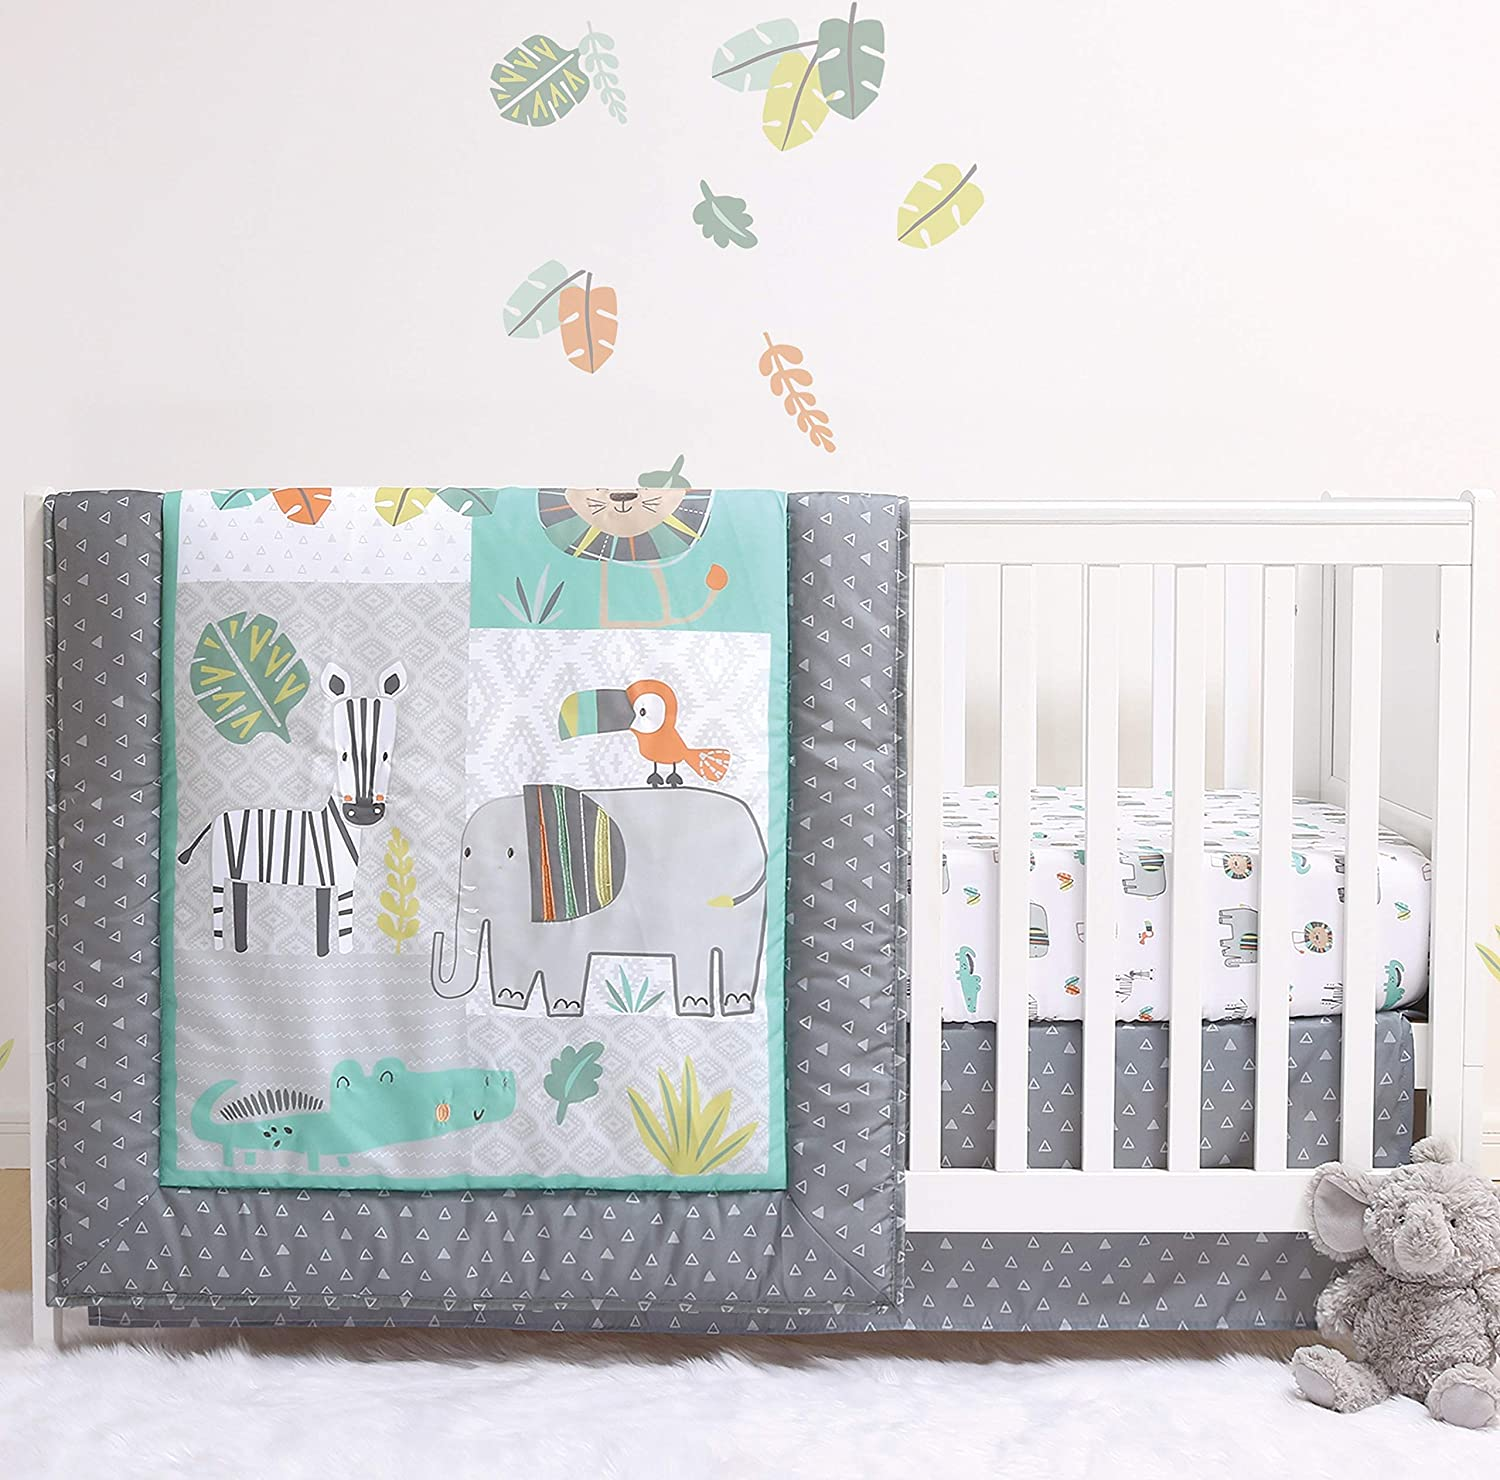 The High material Peanutshell Safari Bedding 4 years warranty Sets for 3 Girls Baby Boys or P